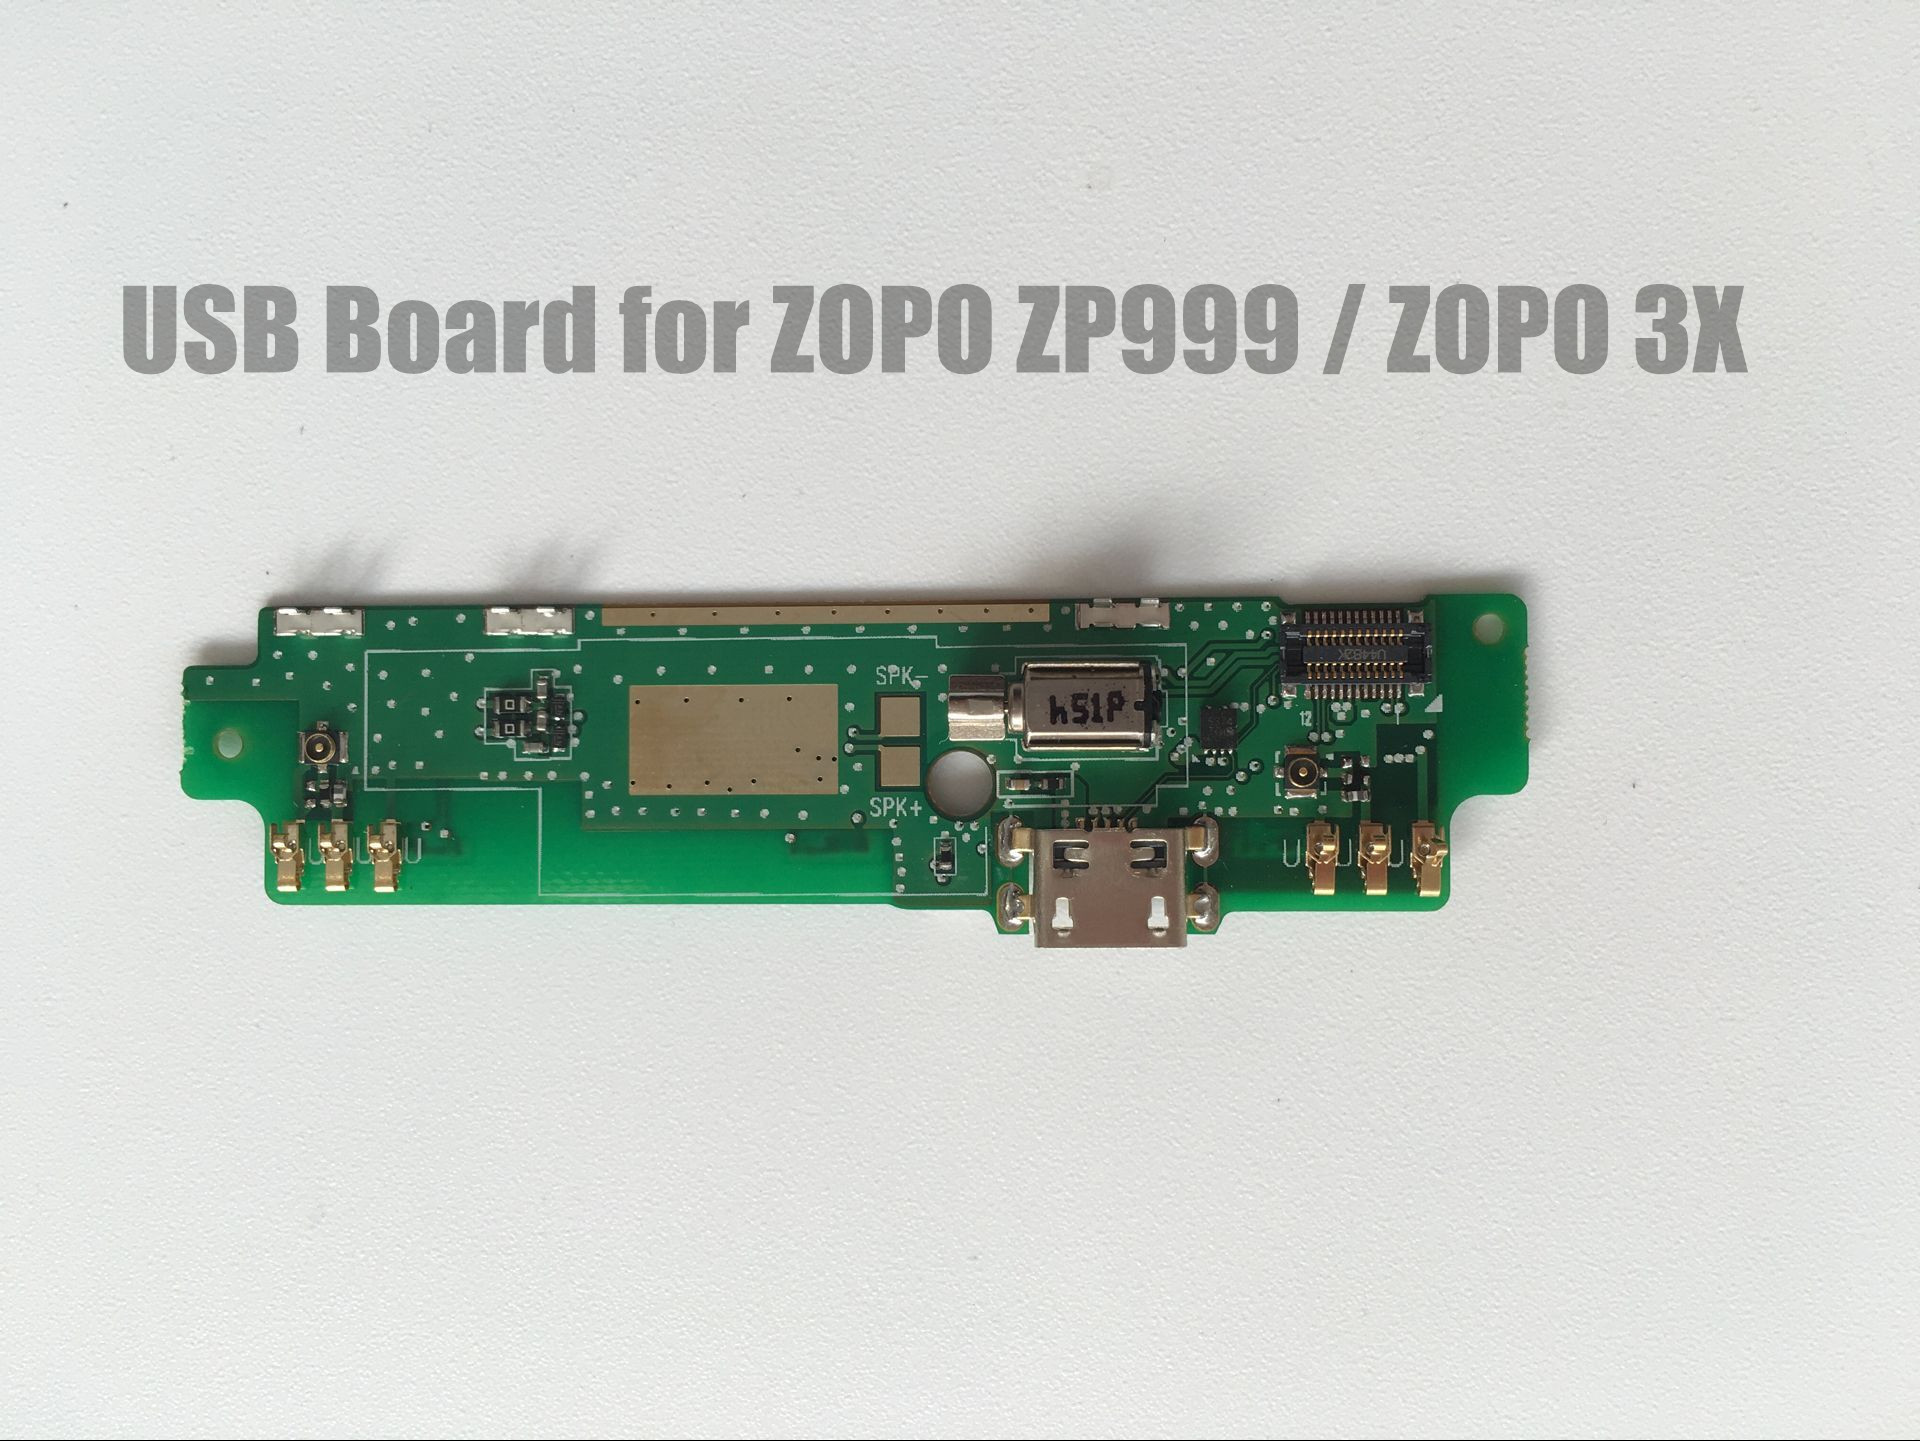 Original ZOPO ZP999 USB Board with Mic Accessories USB Charger Plug Board Module Replacement for ZOPO